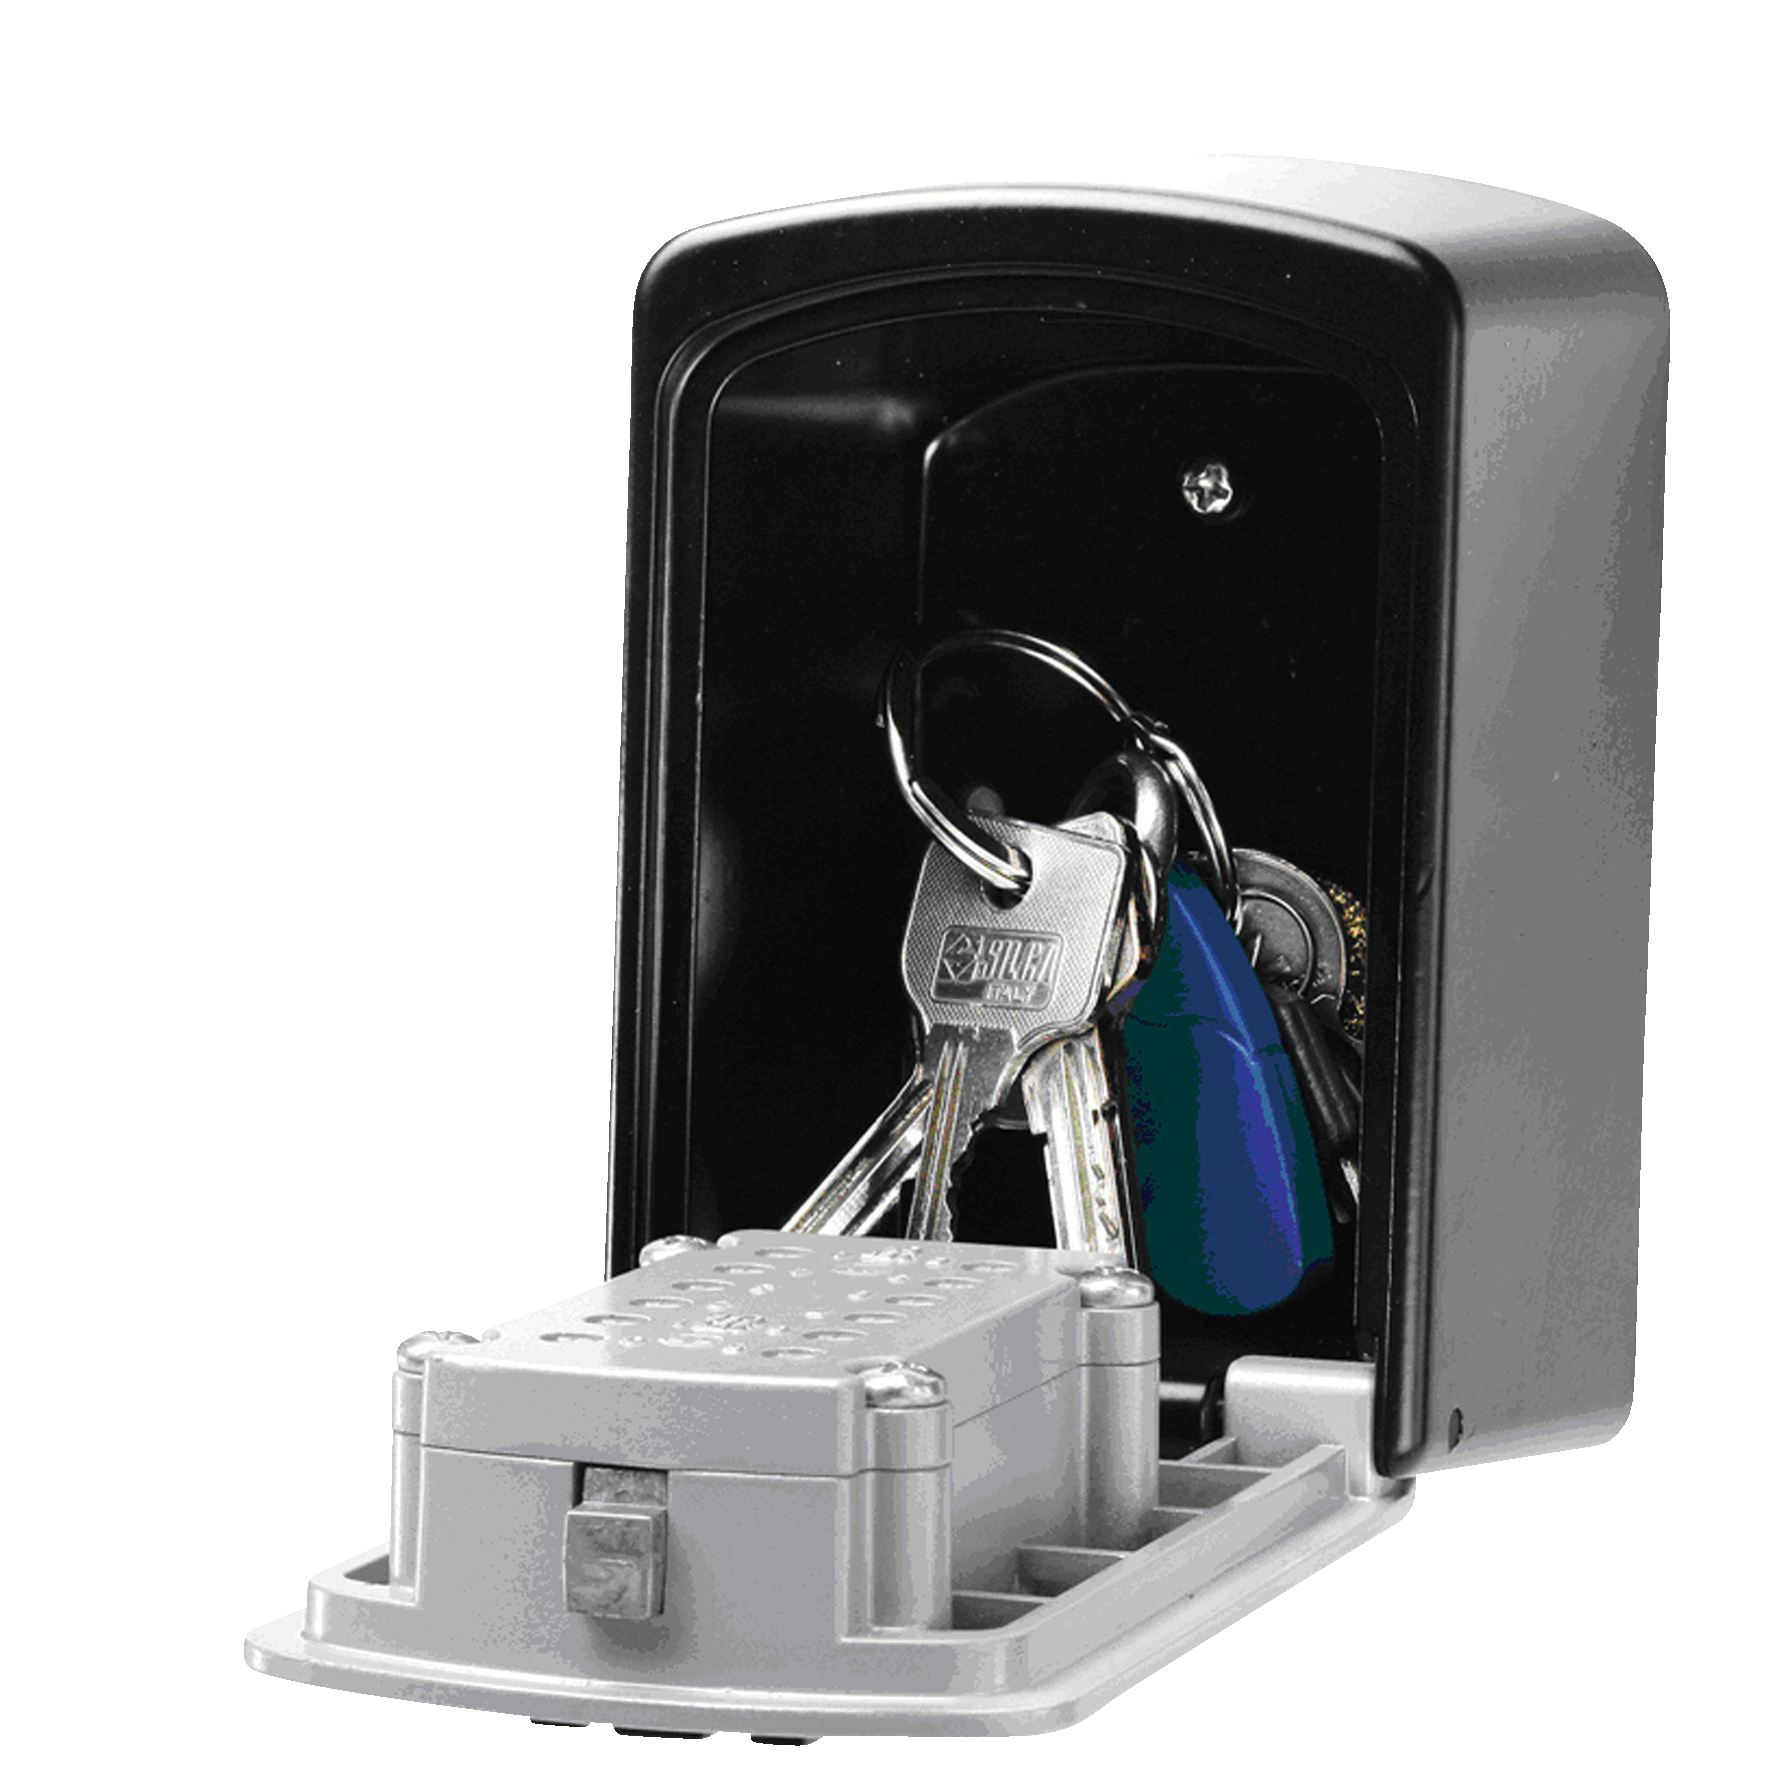 Image for Securikey Push Access Key Store Black /Grey (Wall mountable with waterproof cover) 5412D